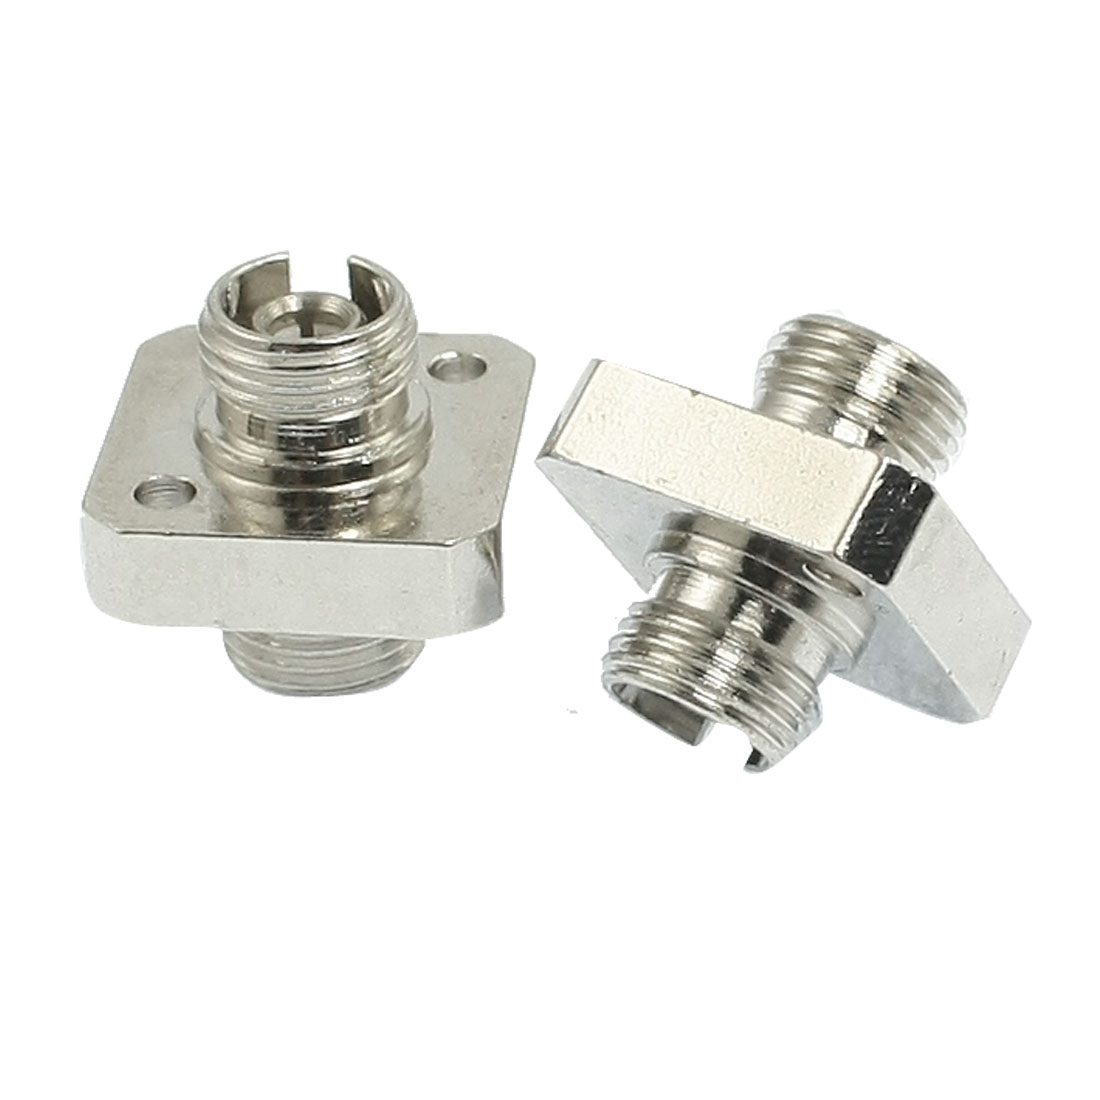 2 Pcs Square Metal FC Flange Type Multimode Fiber Optic Attenuator Adapter